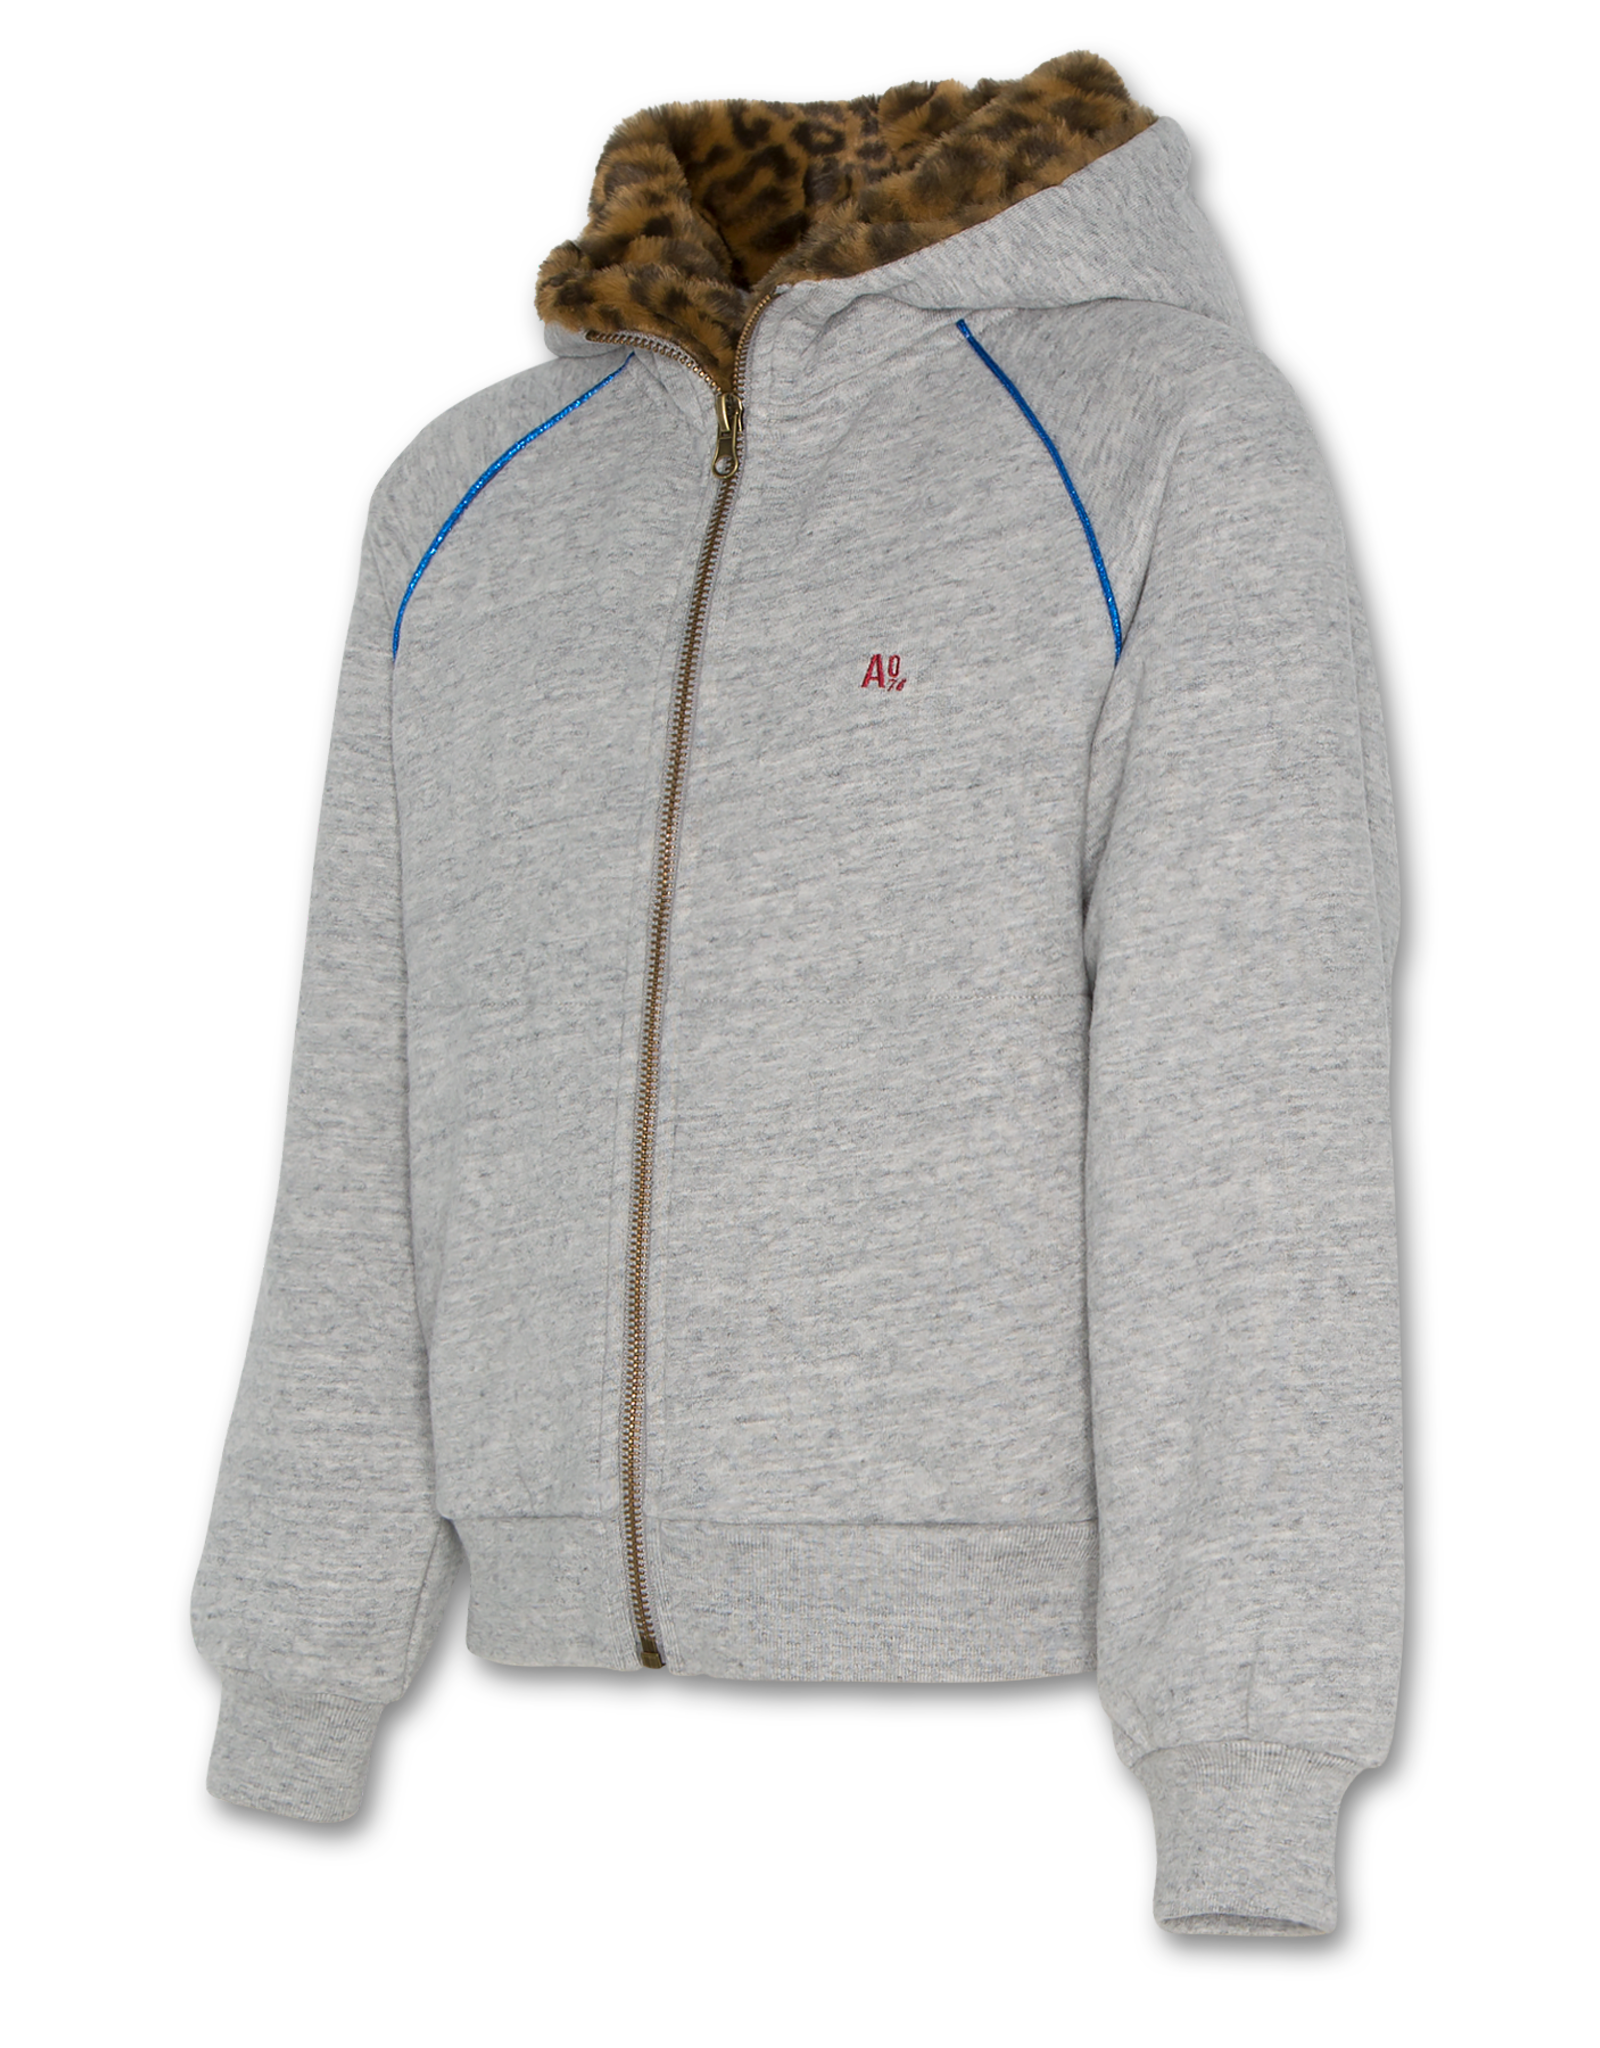 AMERICAN OUTFITTERS AO76 hoodie full zip sweater oxford